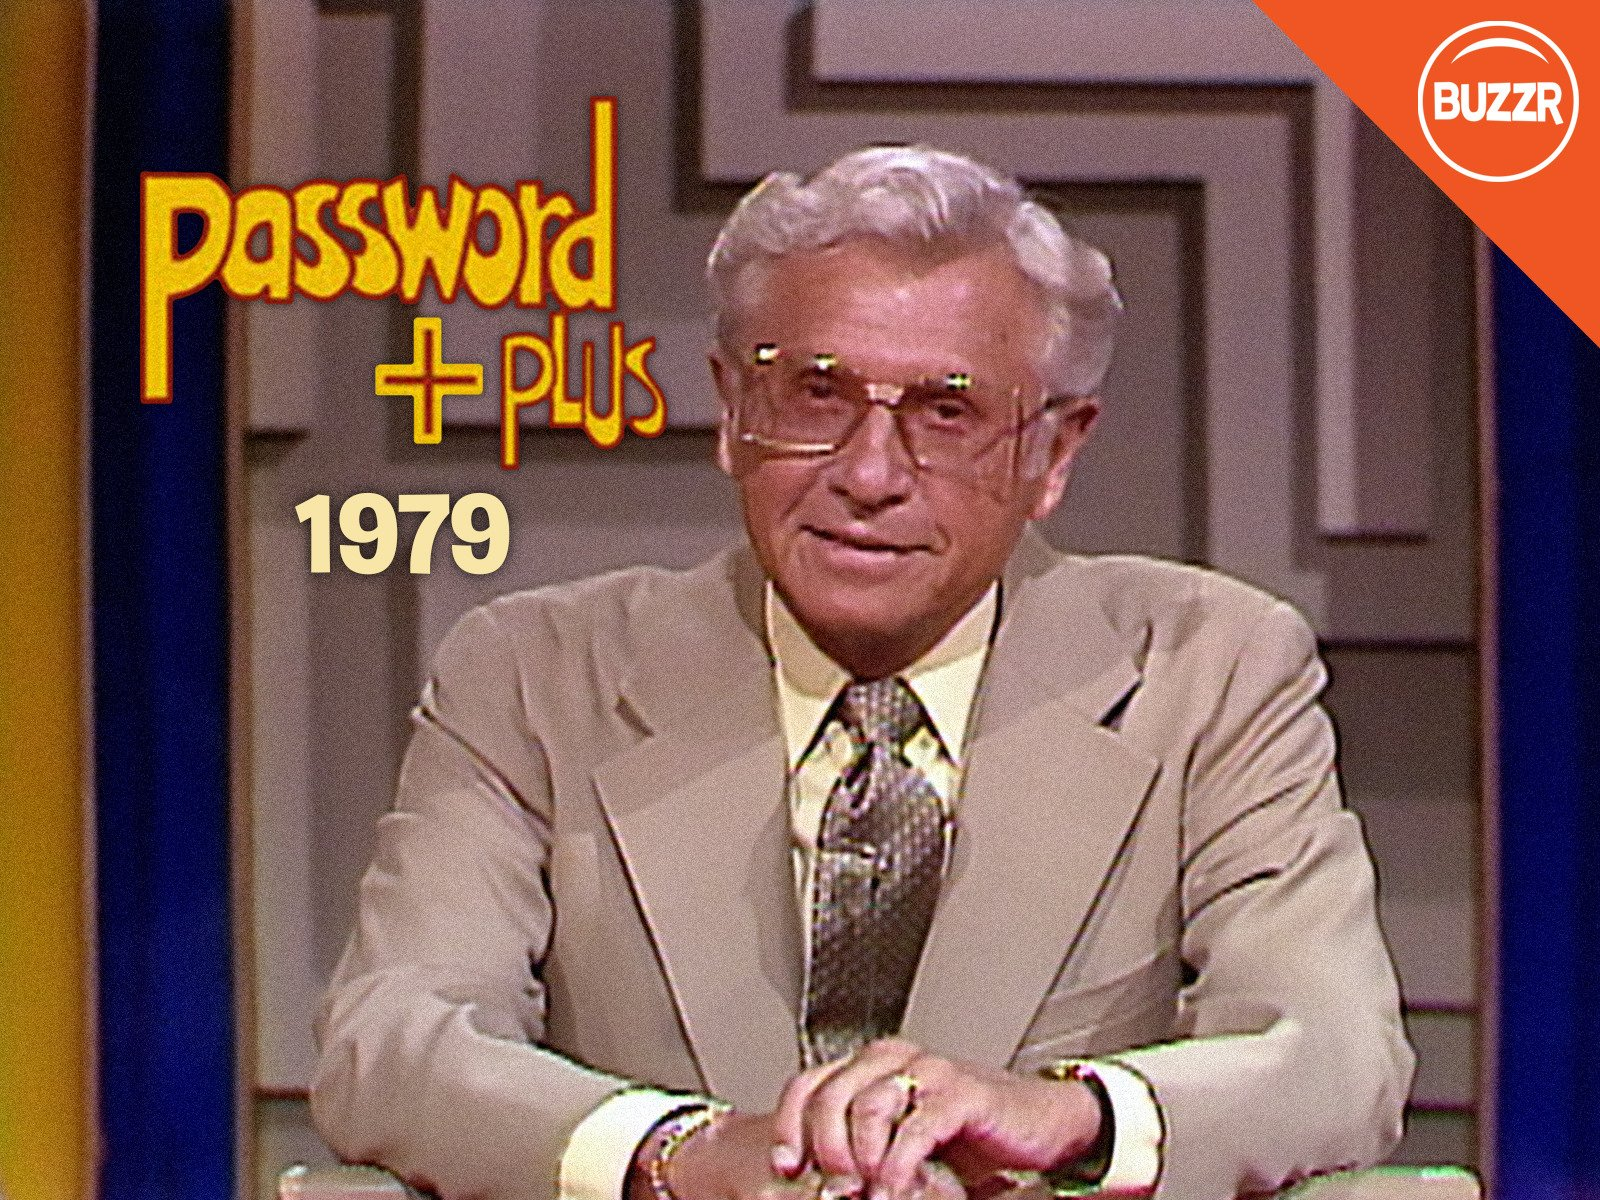 Password Plus 79 - Season 1